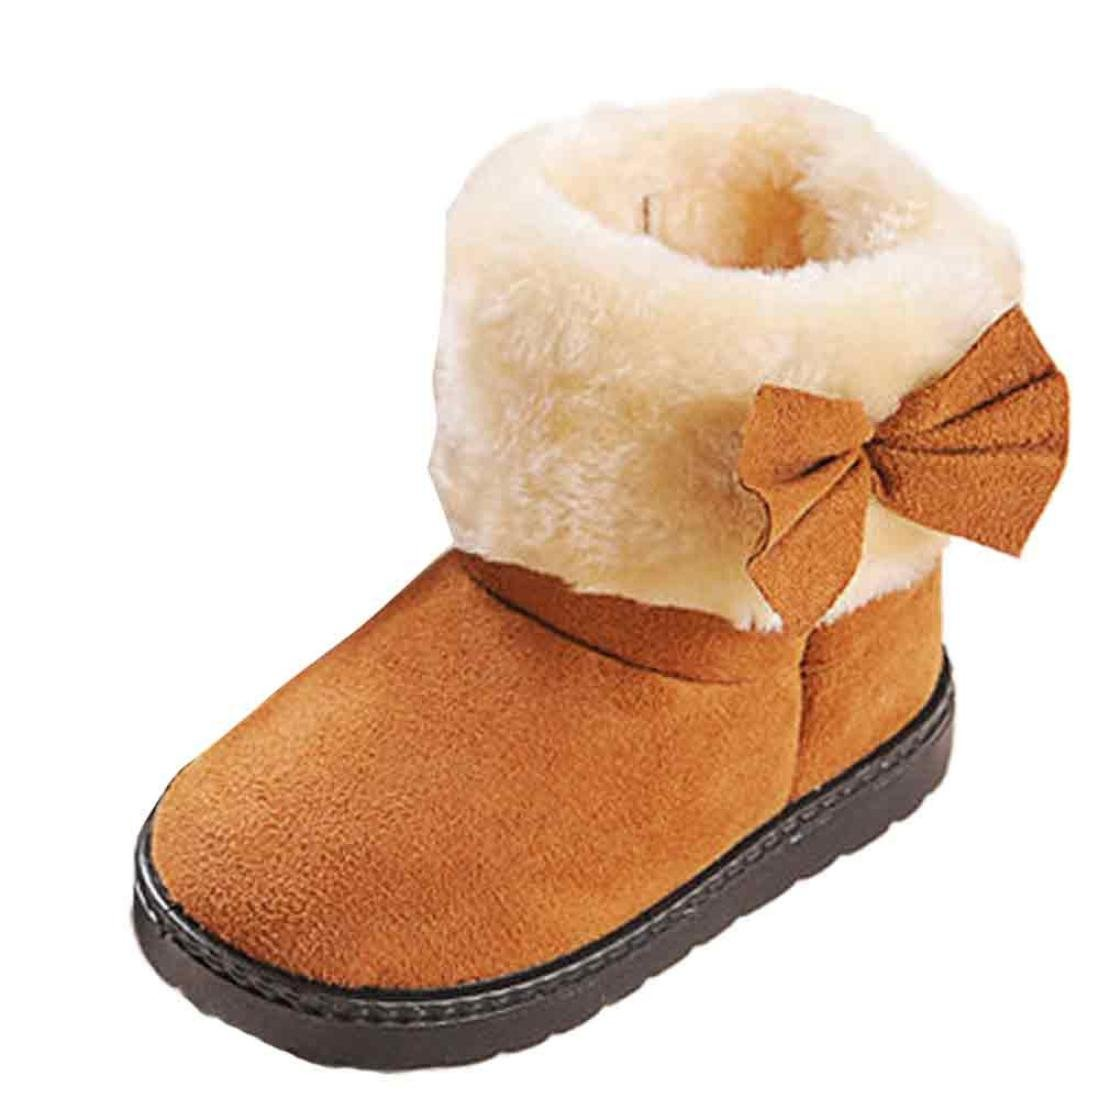 Amlaiworld Children Shoes,Fashion Bowknot Winter Baby Girl Style Cotton Boot Warm Snow Boots